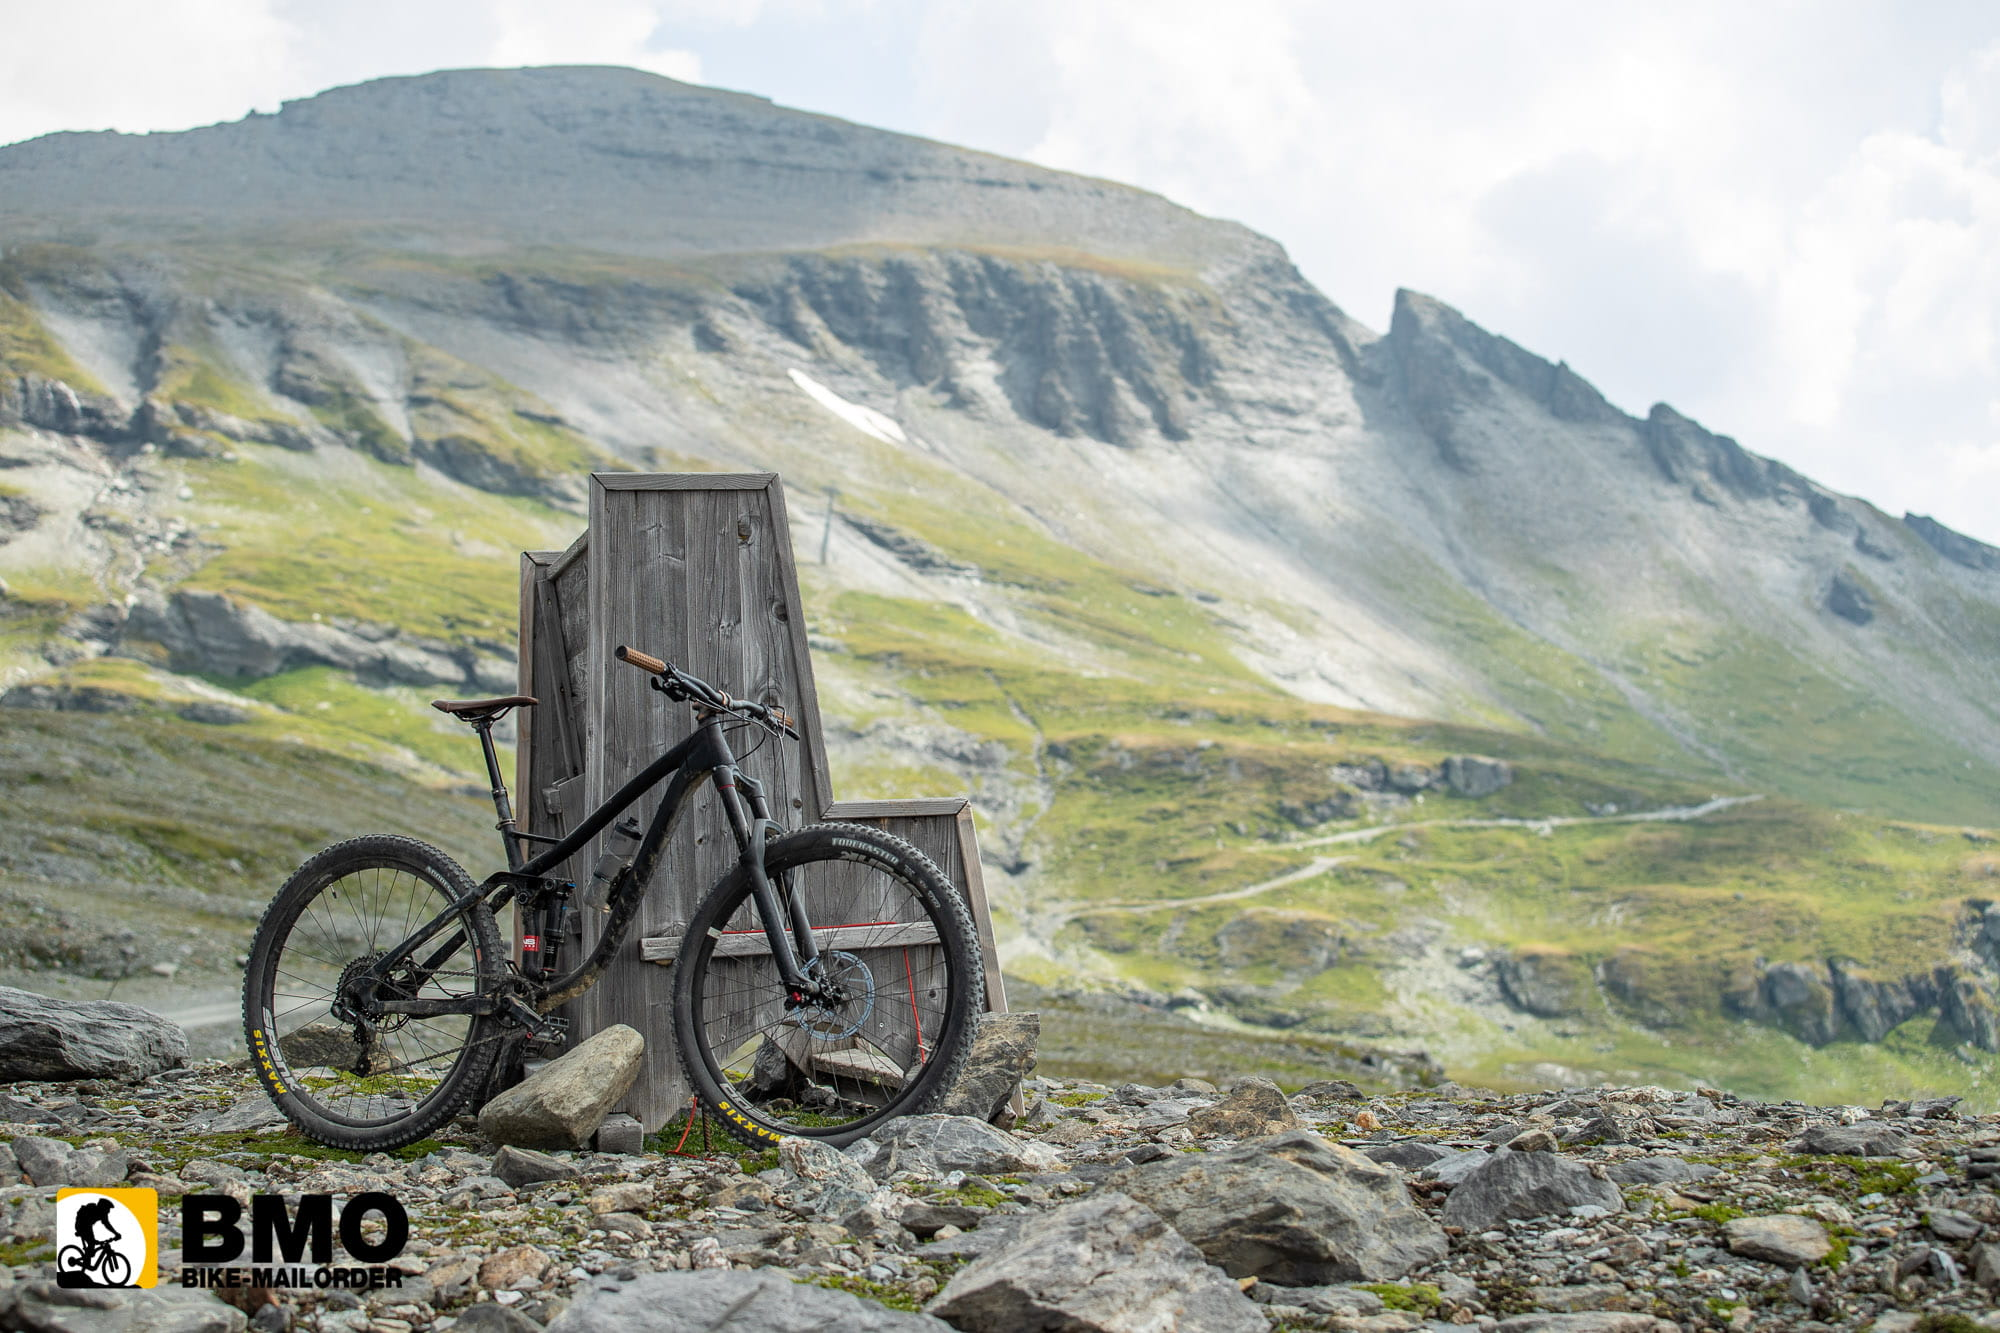 BMO_Home-of-Trails-Flims-Bike-Mailorder-4